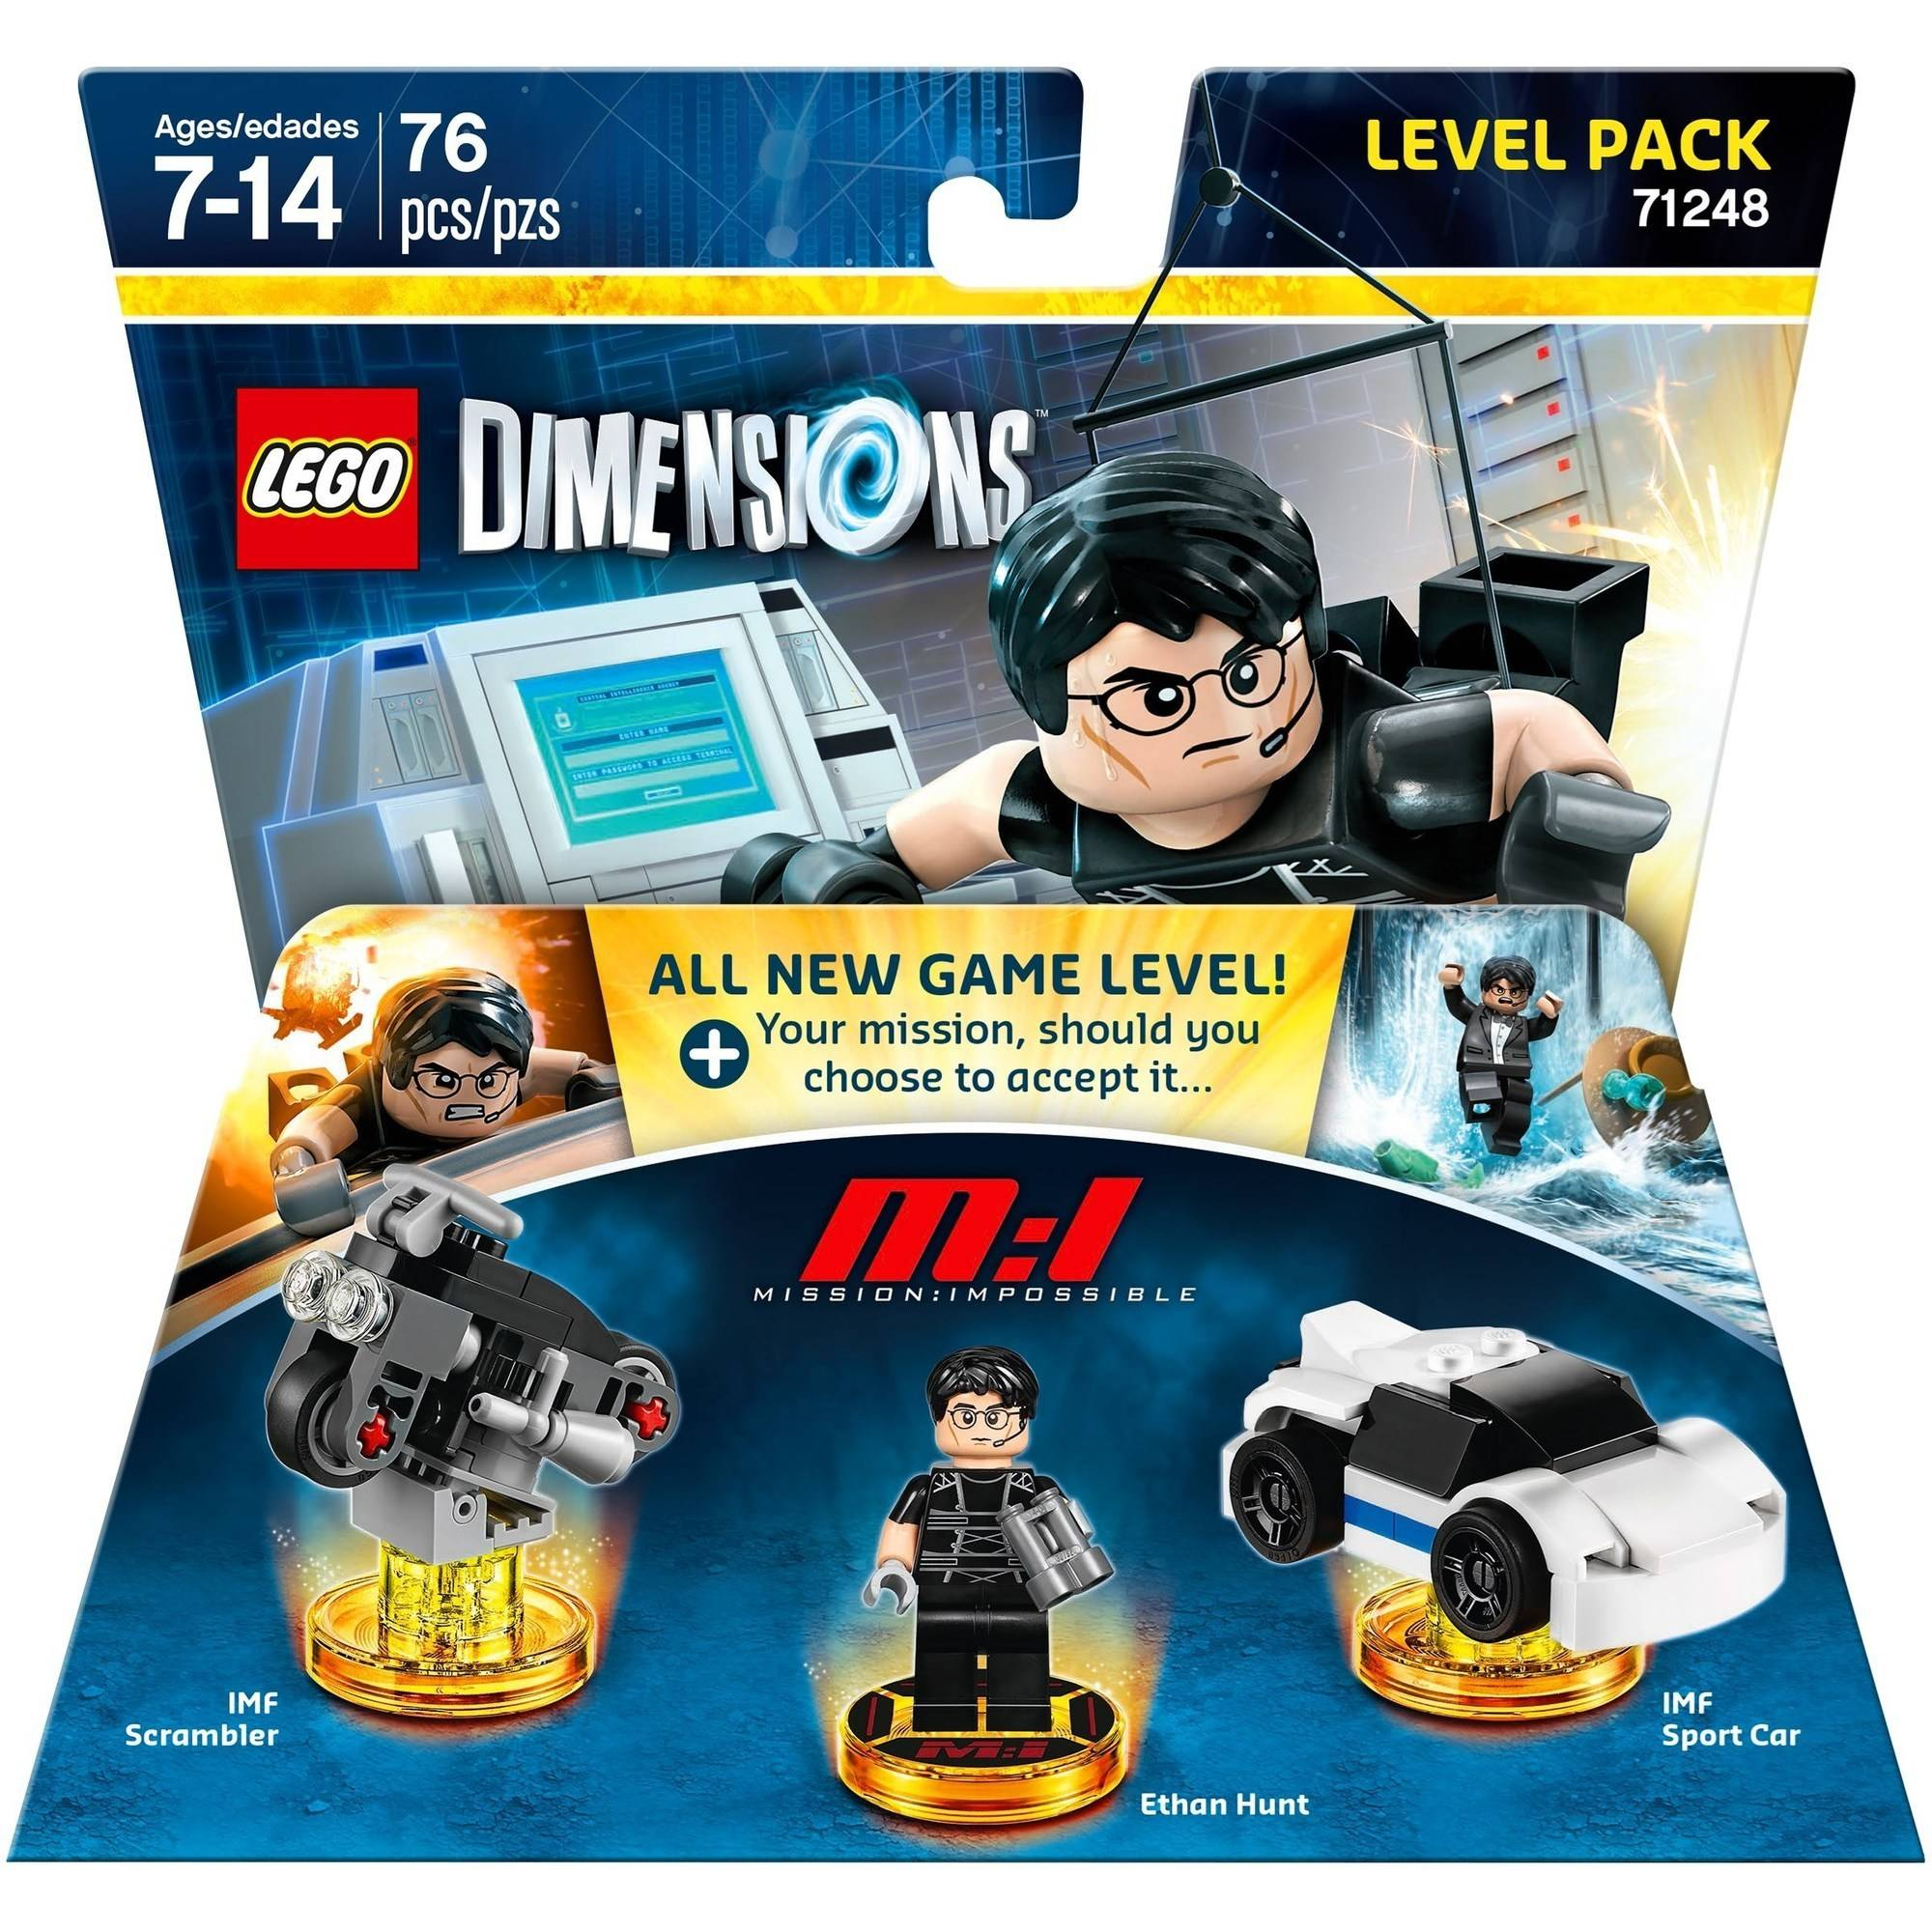 LEGO Dimensions Mission Impossible Level Pack (Universal)